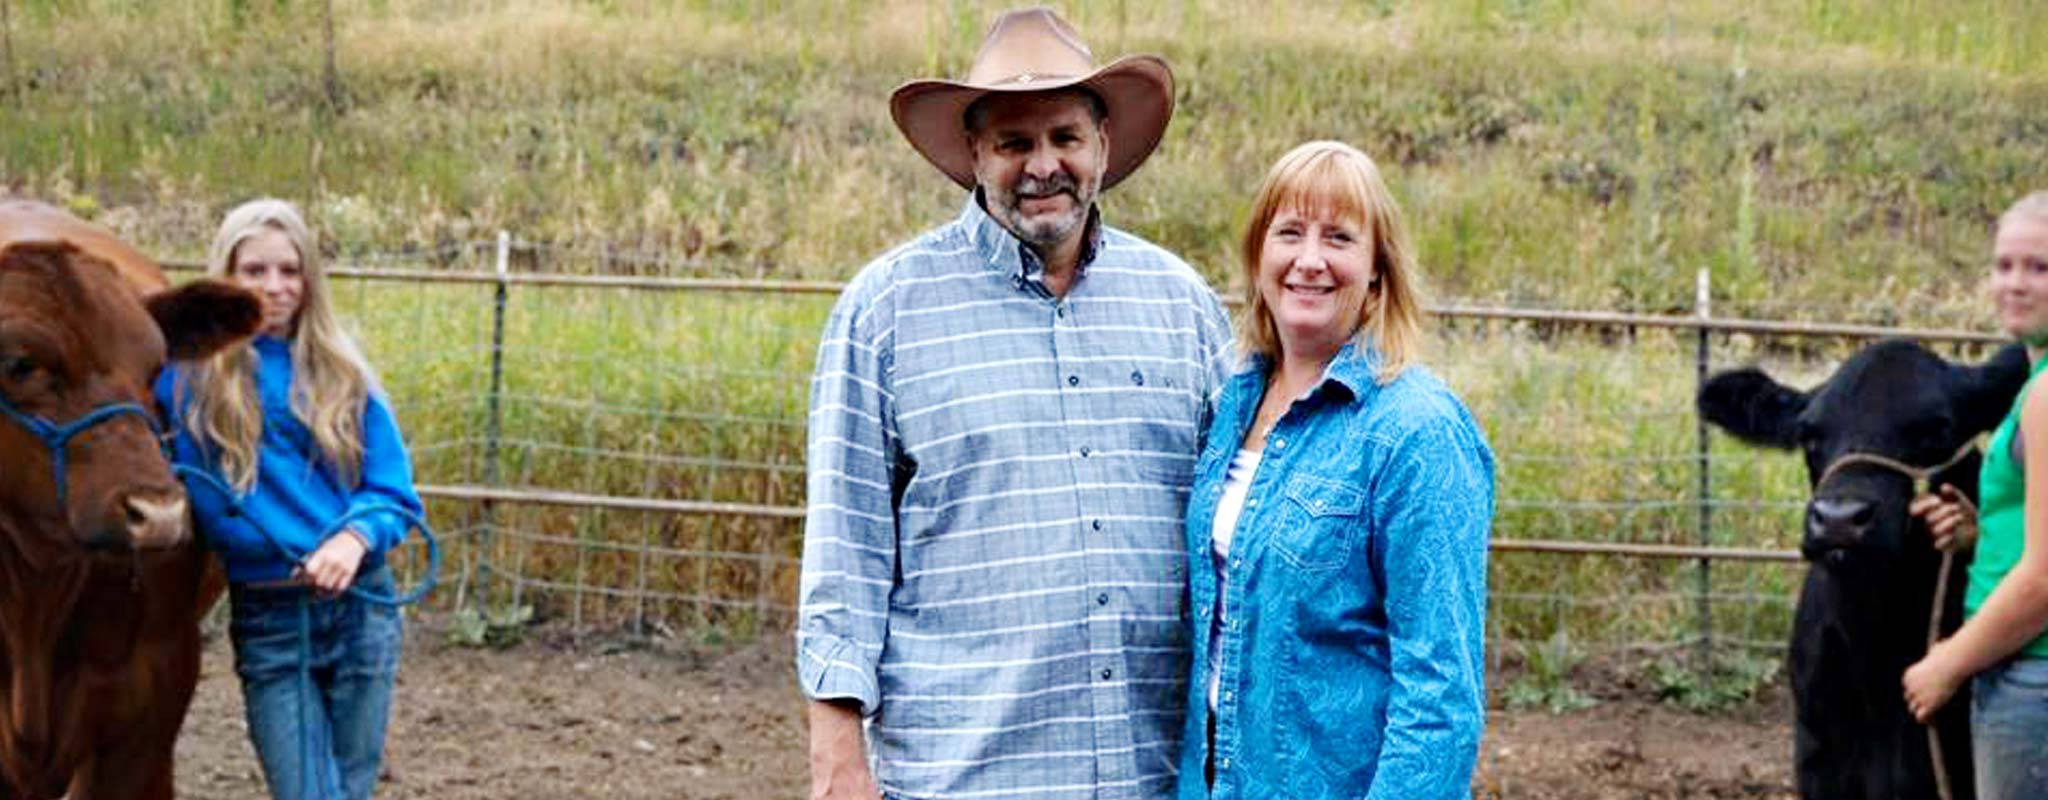 Jeff and Donna Wiechman at a 4-H event.